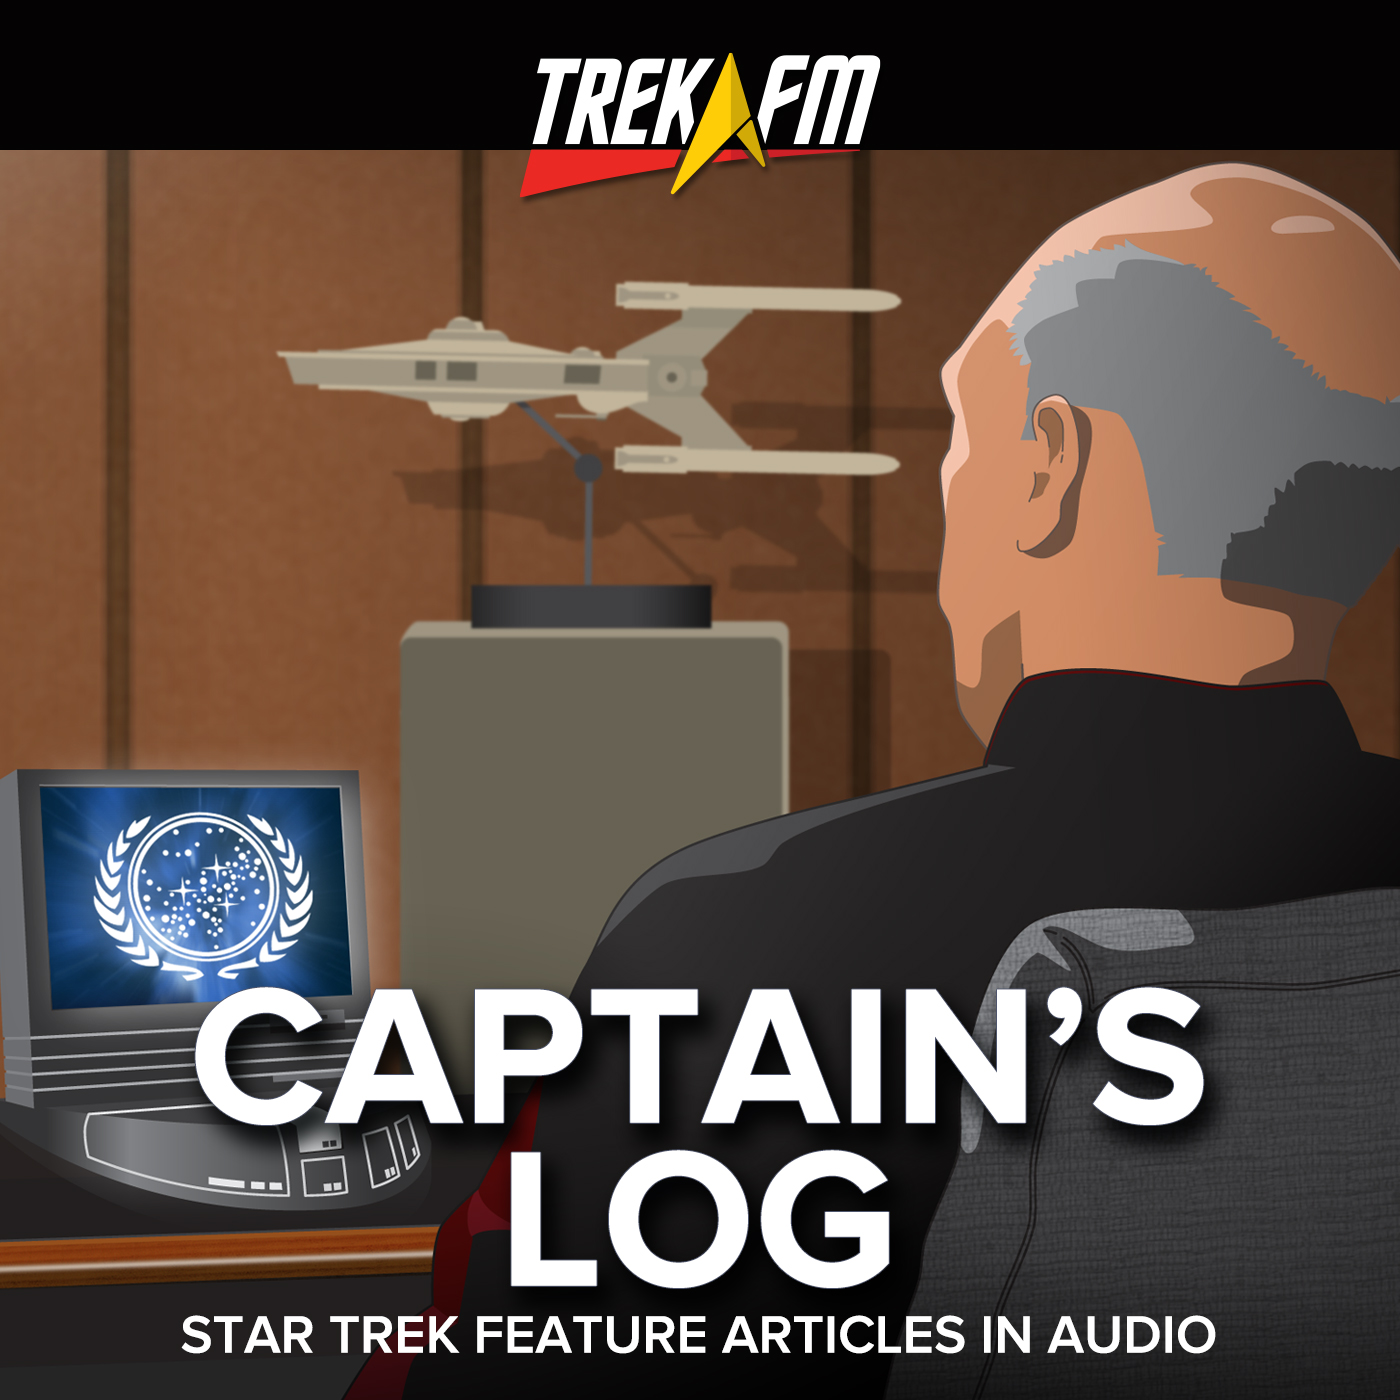 Captains-Log-Cover-400x400.jpg